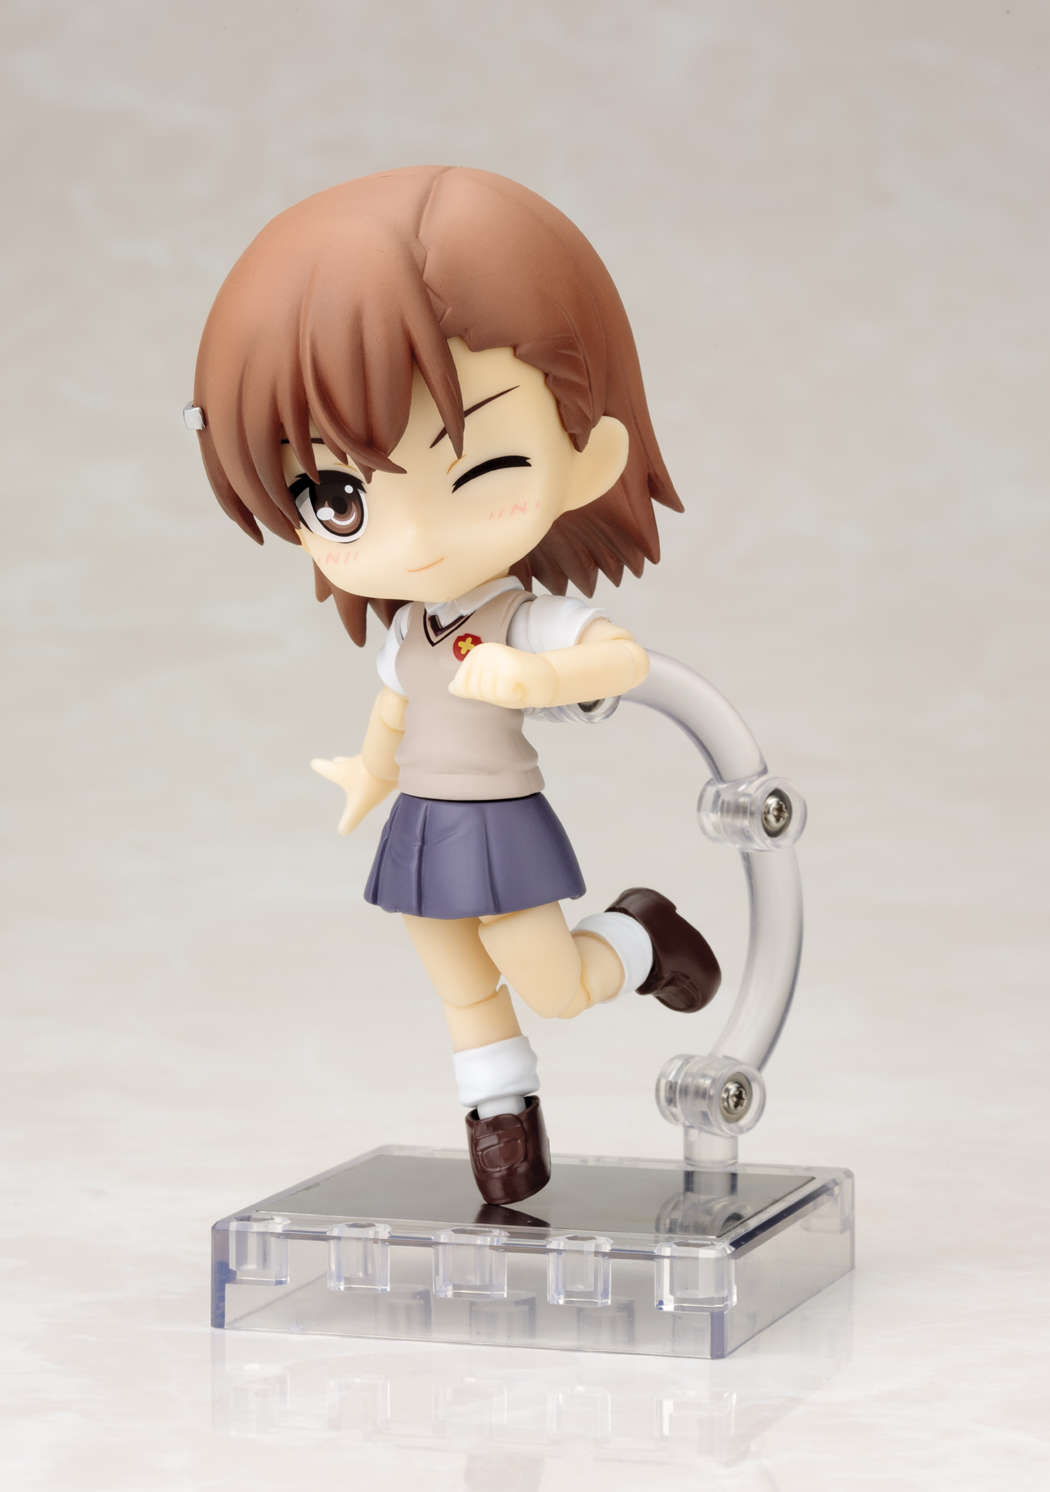 CERTAIN SCIENTIFIC RAILGUN S MIKOTO CU-POCHE FIG